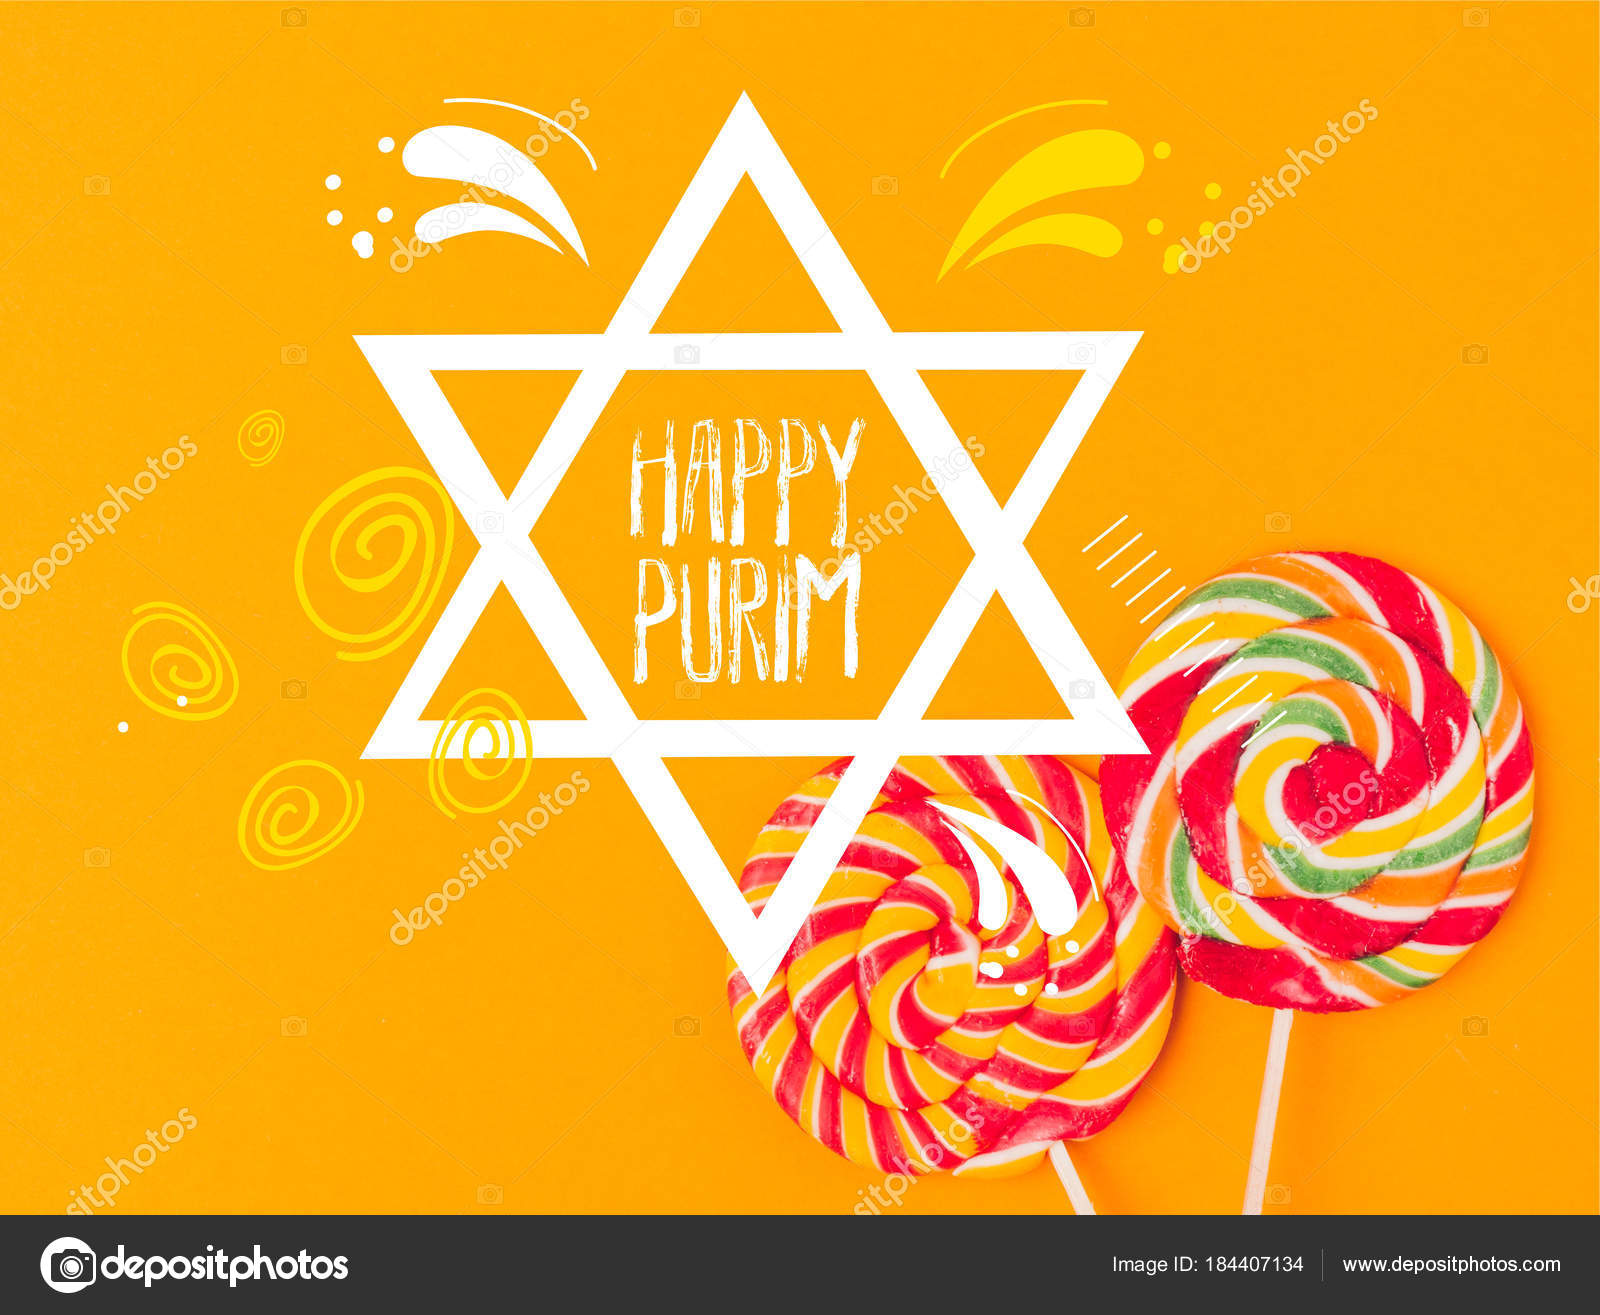 """ID: a white magen David on a golden yellow background says """"Happy Purim"""". There are two large round lollipops in the lower right hand corner."""